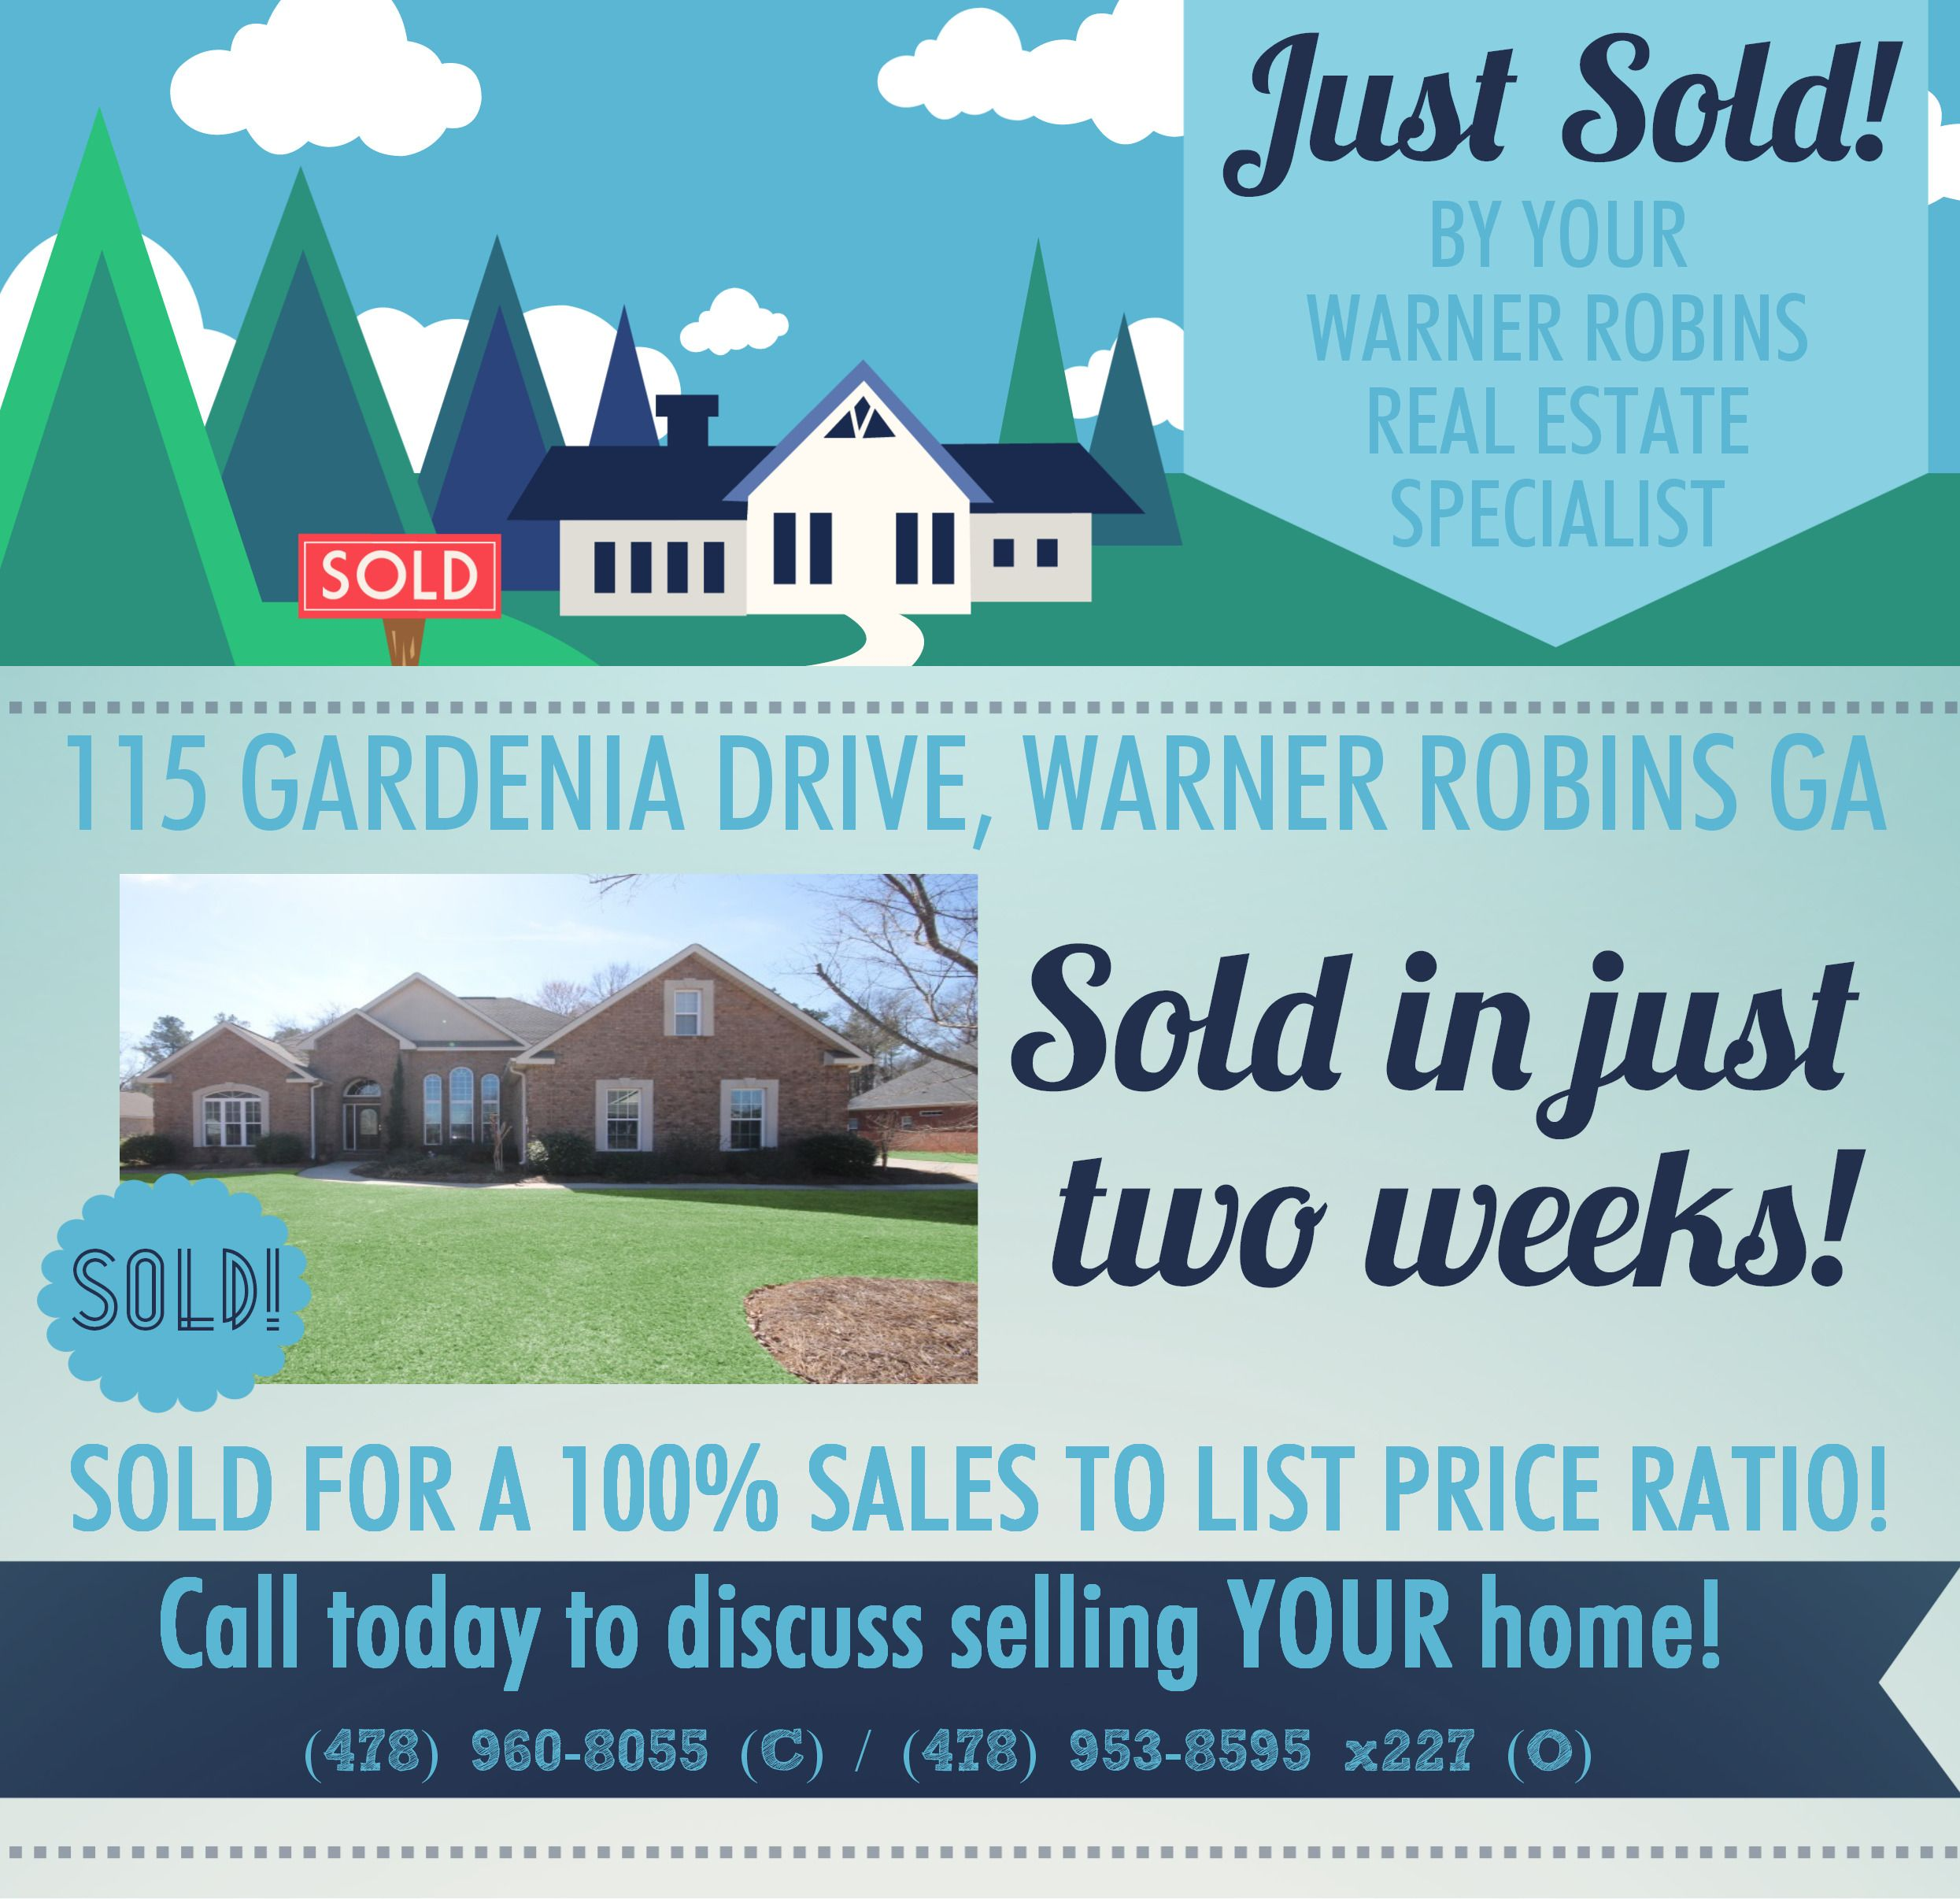 Just SOLD this 4 Bdrm/3 Bath home in Weatherby Plantation Subdivision at 115 Gardenia Drive, Warner Robins GA 31088 (MLS # 116664).